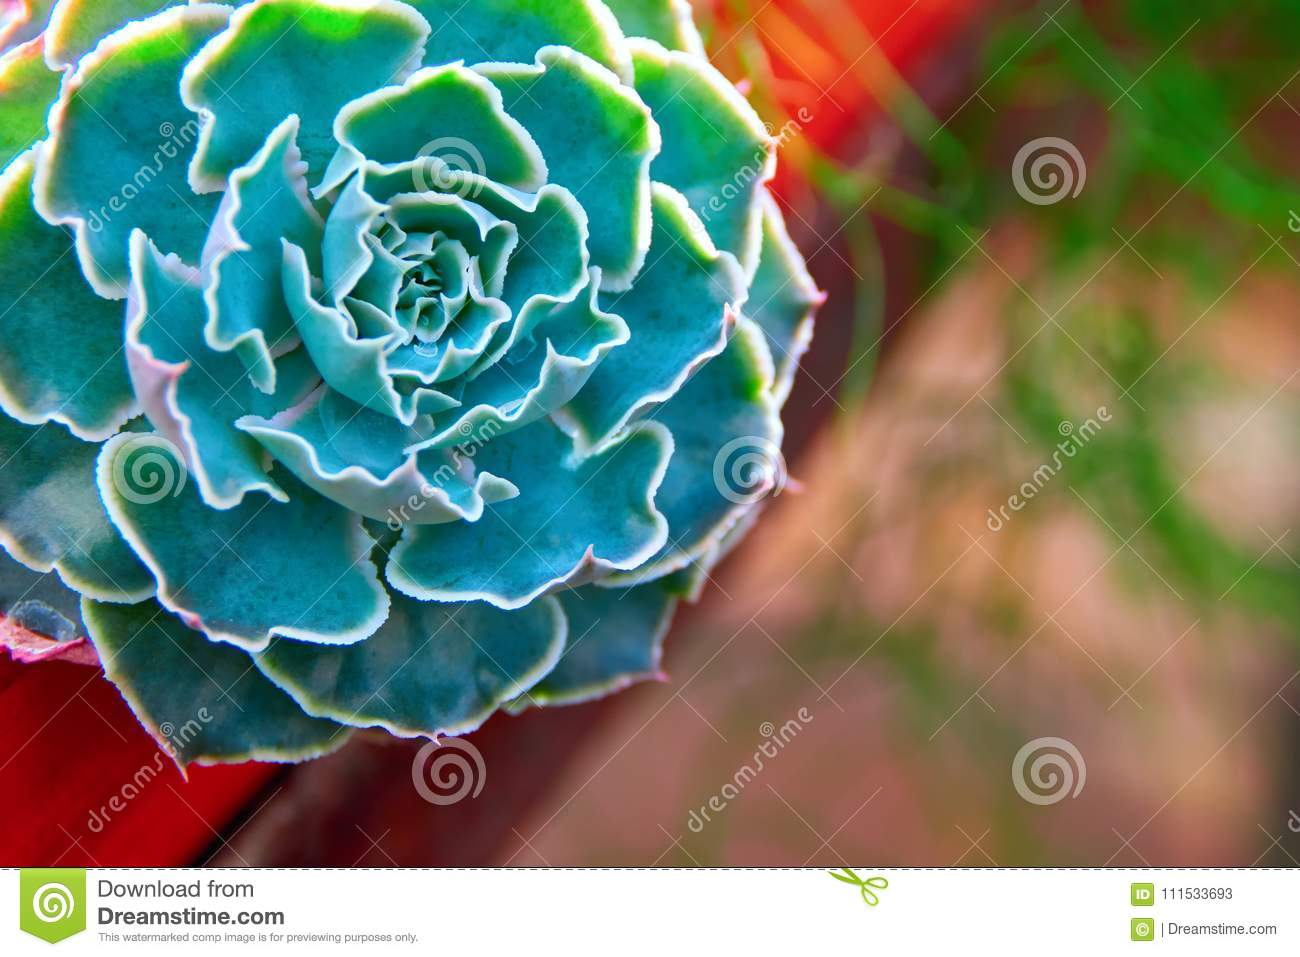 3 985 Succulent Bouquet Photos Free Royalty Free Stock Photos From Dreamstime